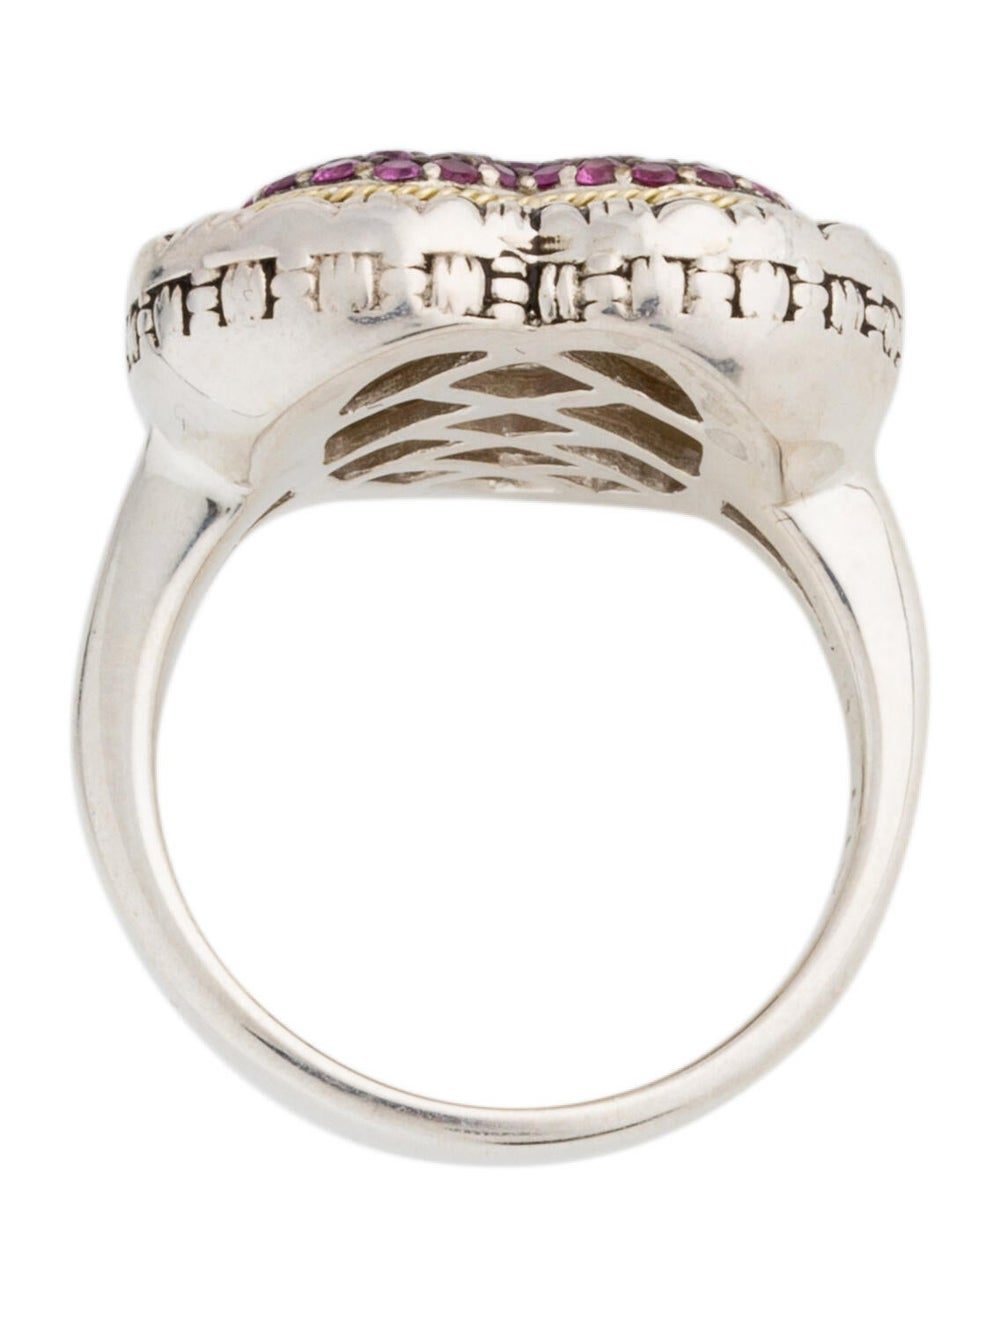 Lali Jewels Ruby Cocktail Ring silver - image 5